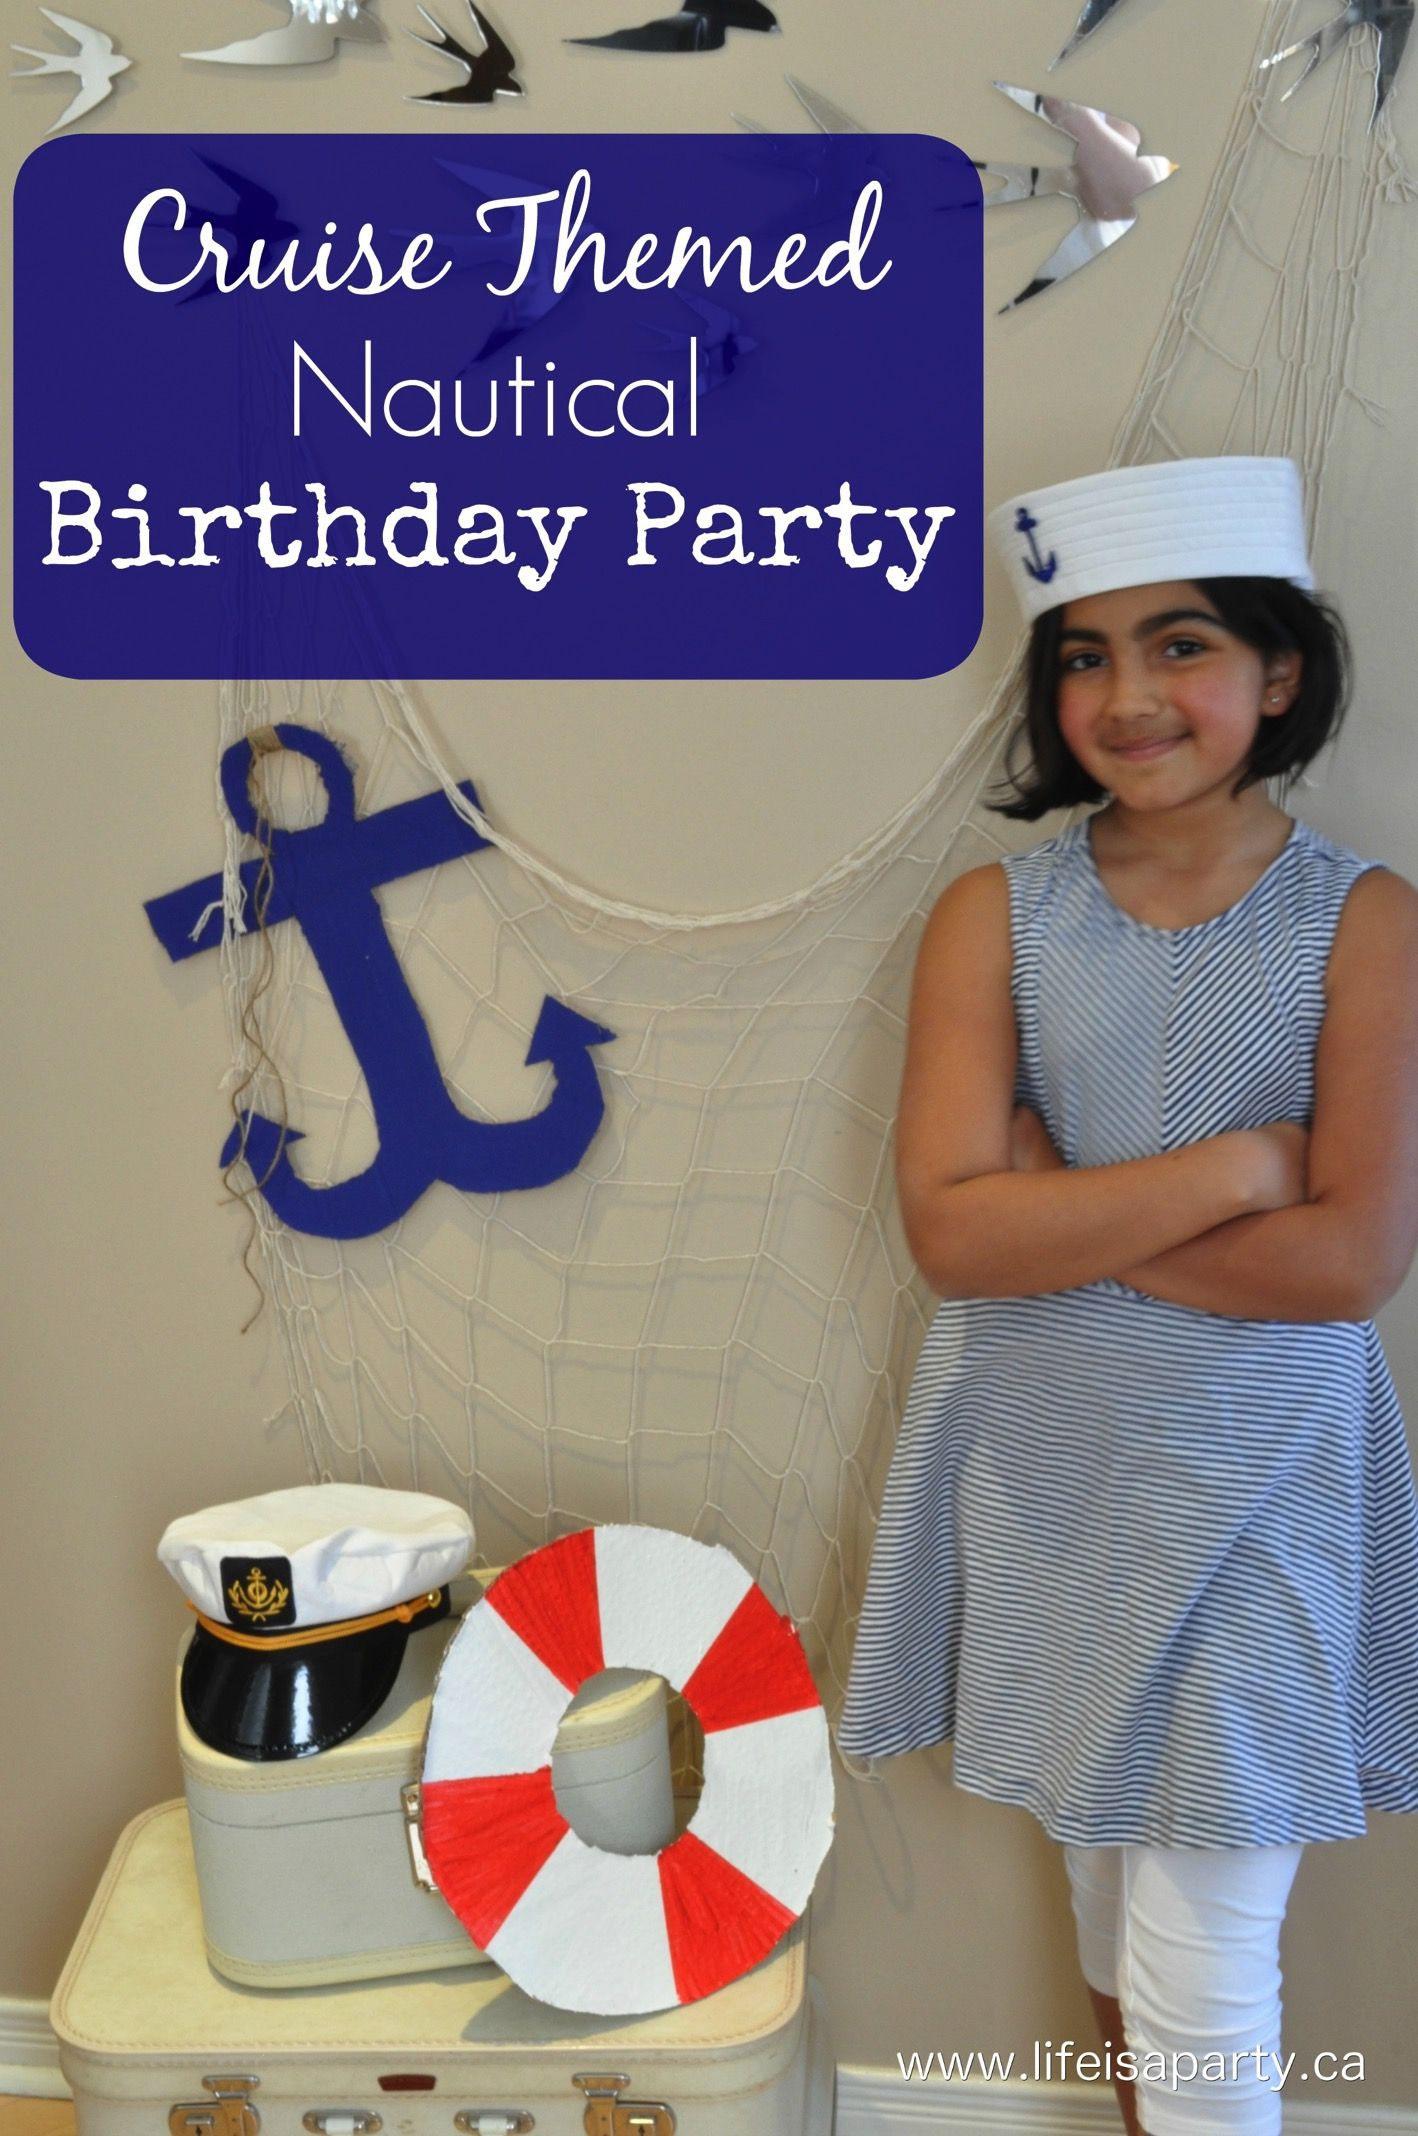 Cruise Themed Nautical Birthday Party Great Kids Party Theme - Cruise ship theme party